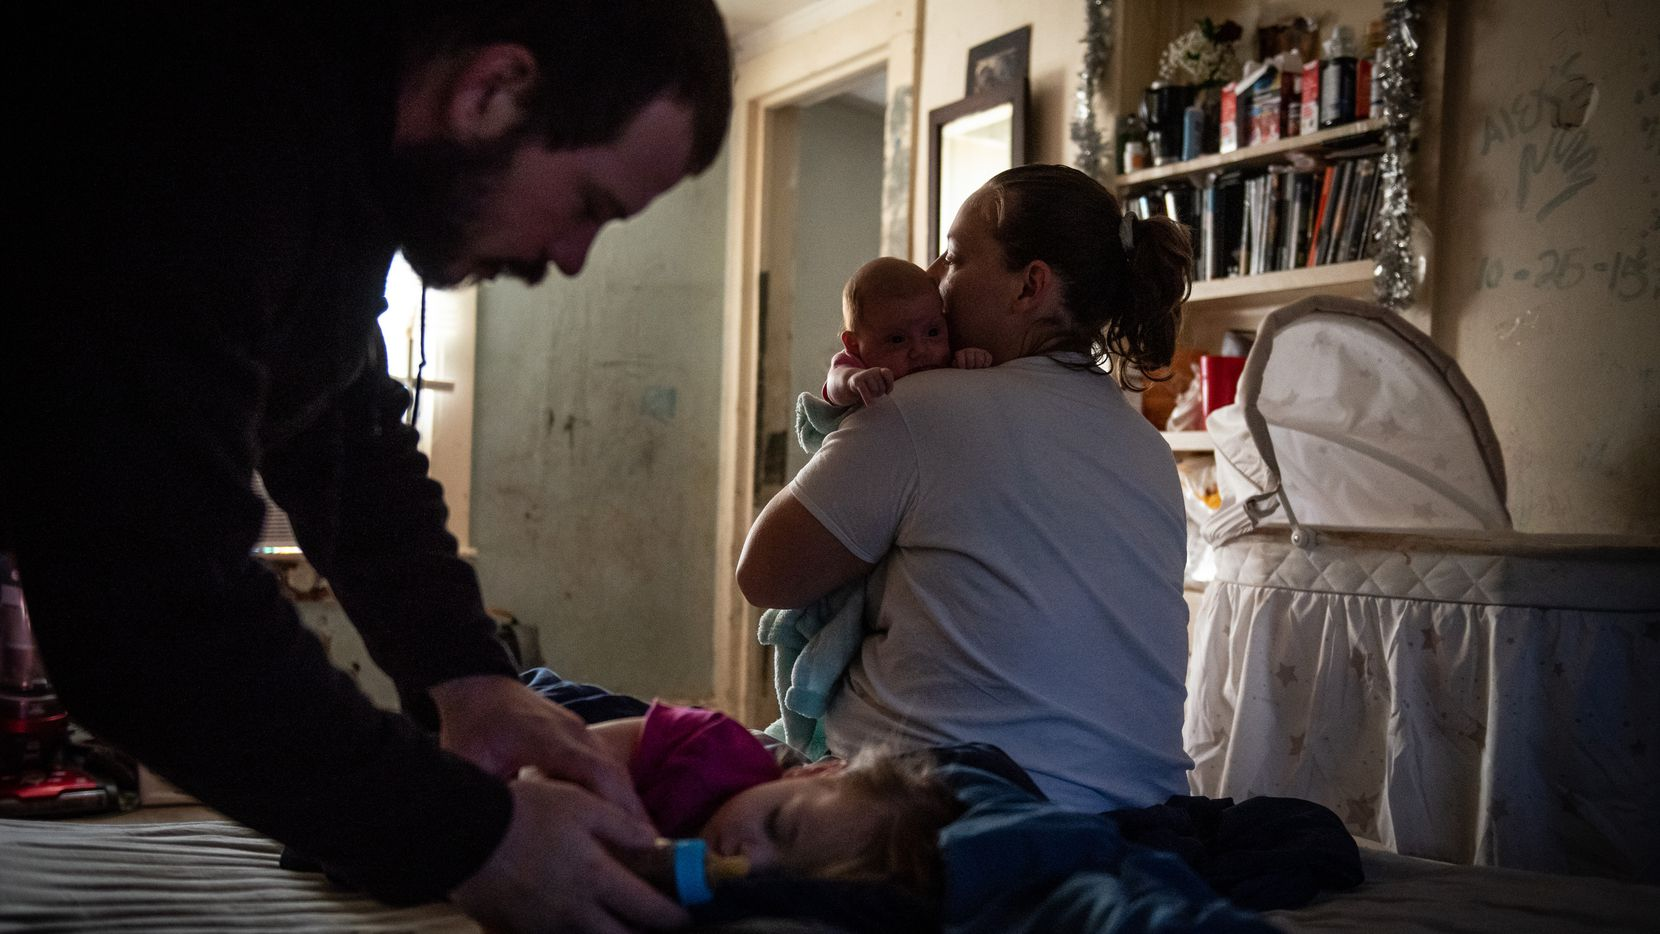 Tiffany Revilla holds her newborn baby, Cheyenne, as her partner, David Romine, cares for their 1-year-old daughter, Adillie, at their home in Fort Worth on Dec. 1.